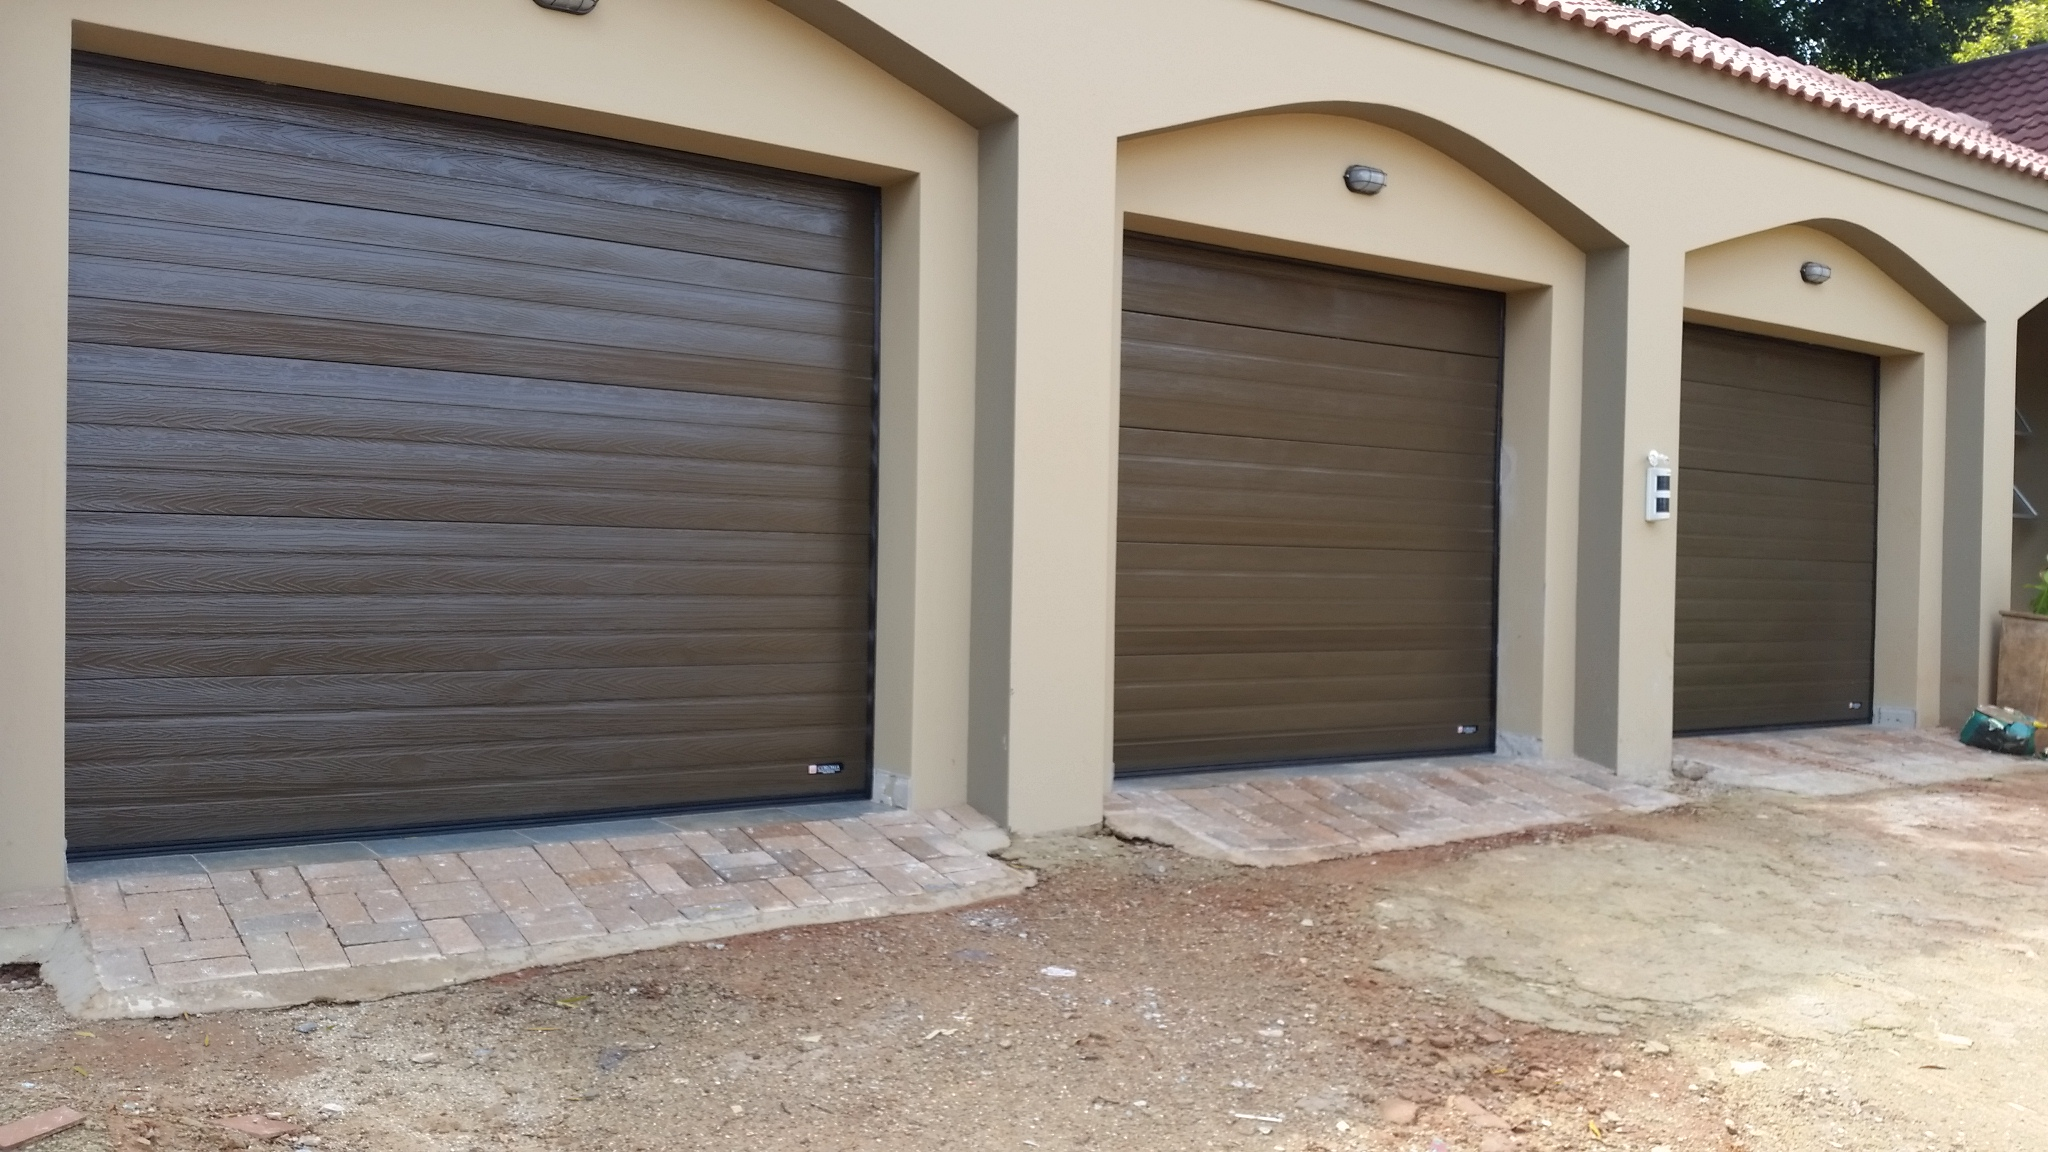 timber horizontal embossing door lines added a style groove doors with very contour give residential look the blenheim tongue strength woodgrain product garage and img popular for nelson